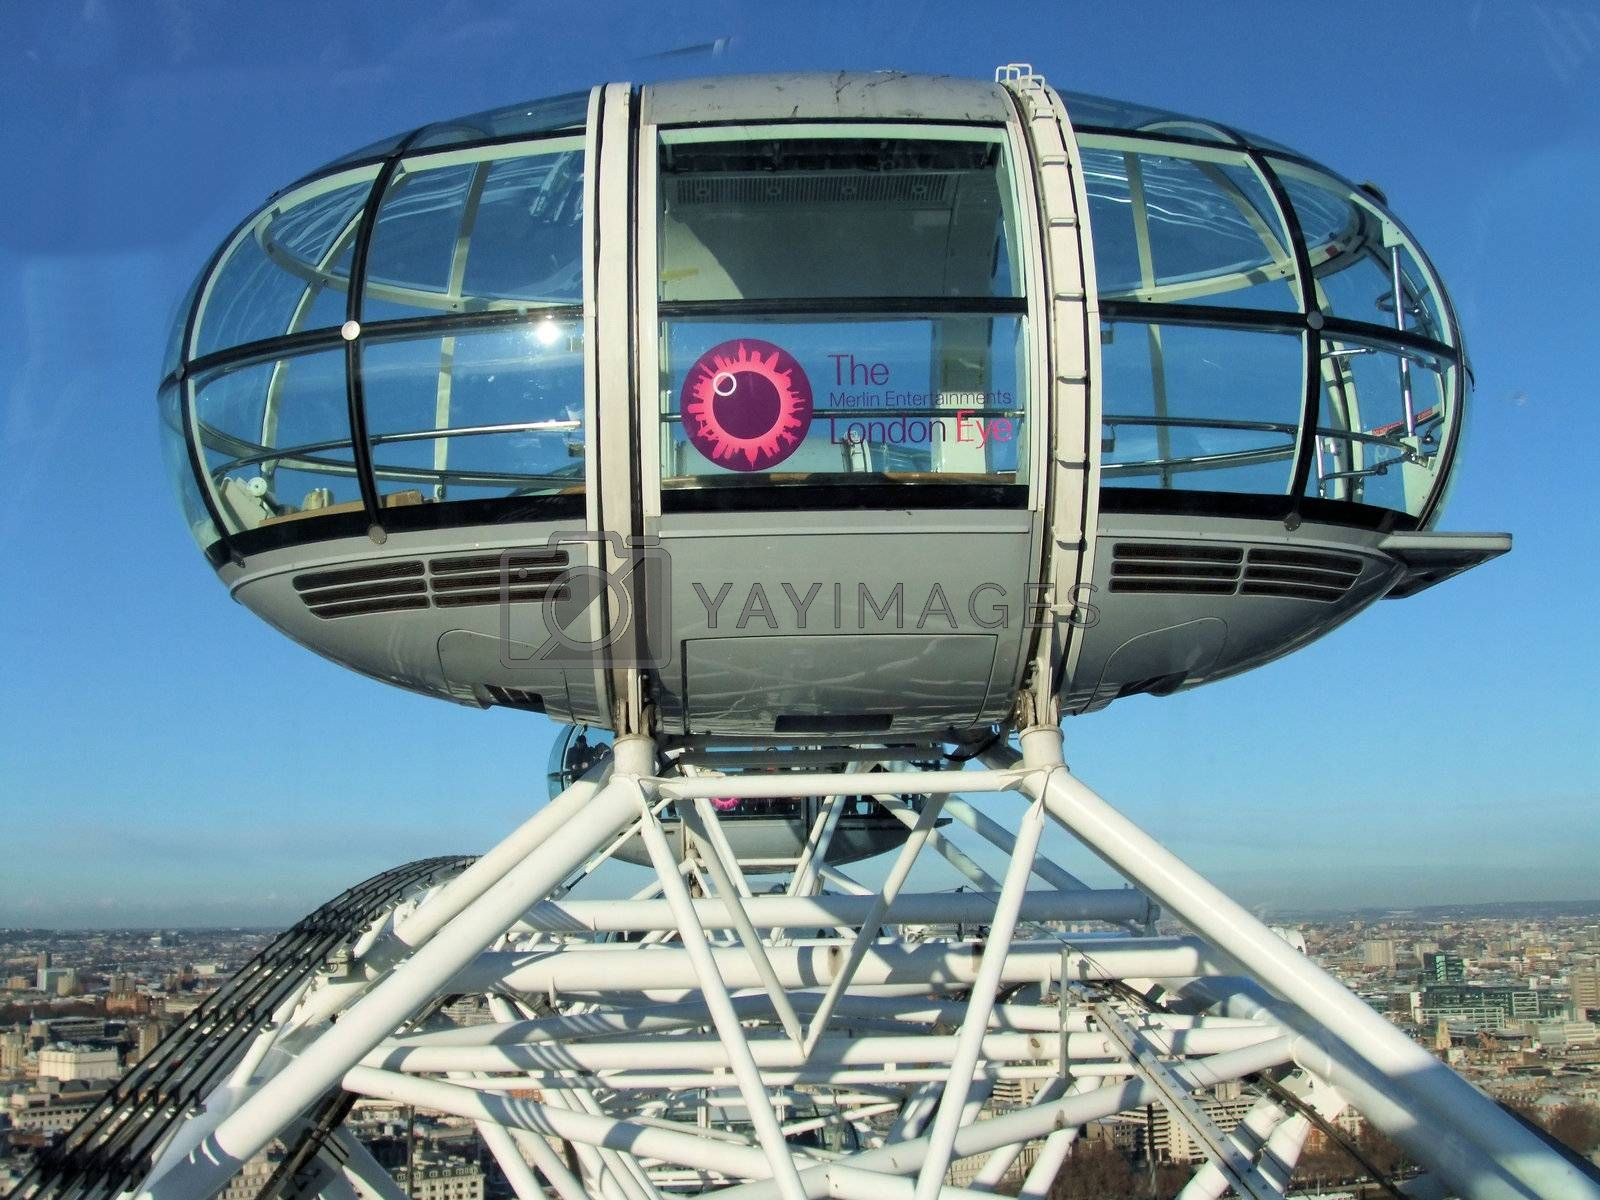 London eye capsule from another capsule